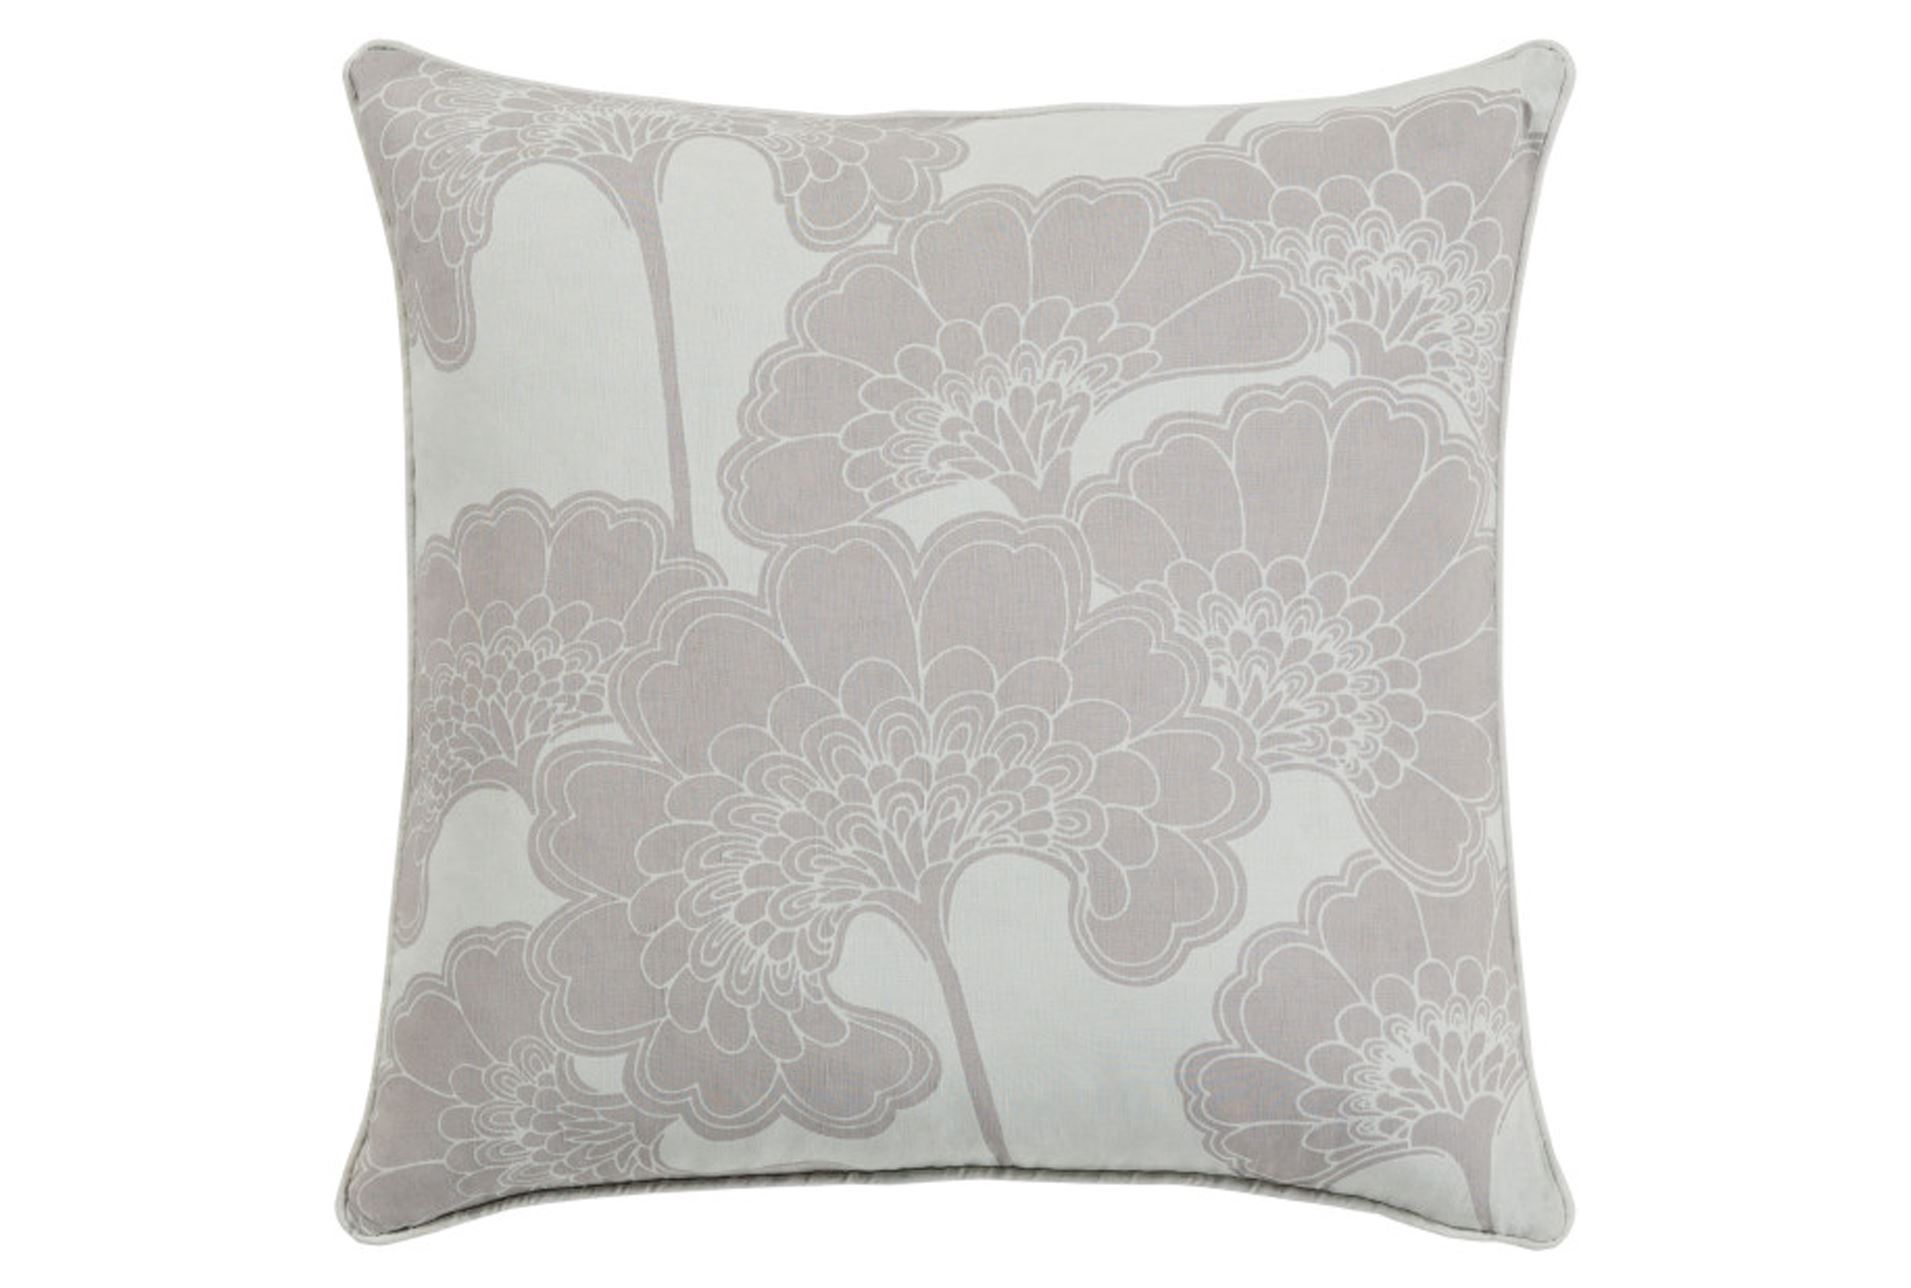 Decorative Pillows Living Spaces : Accent Pillow-Kyoto Taupe 20X20 - Living Spaces